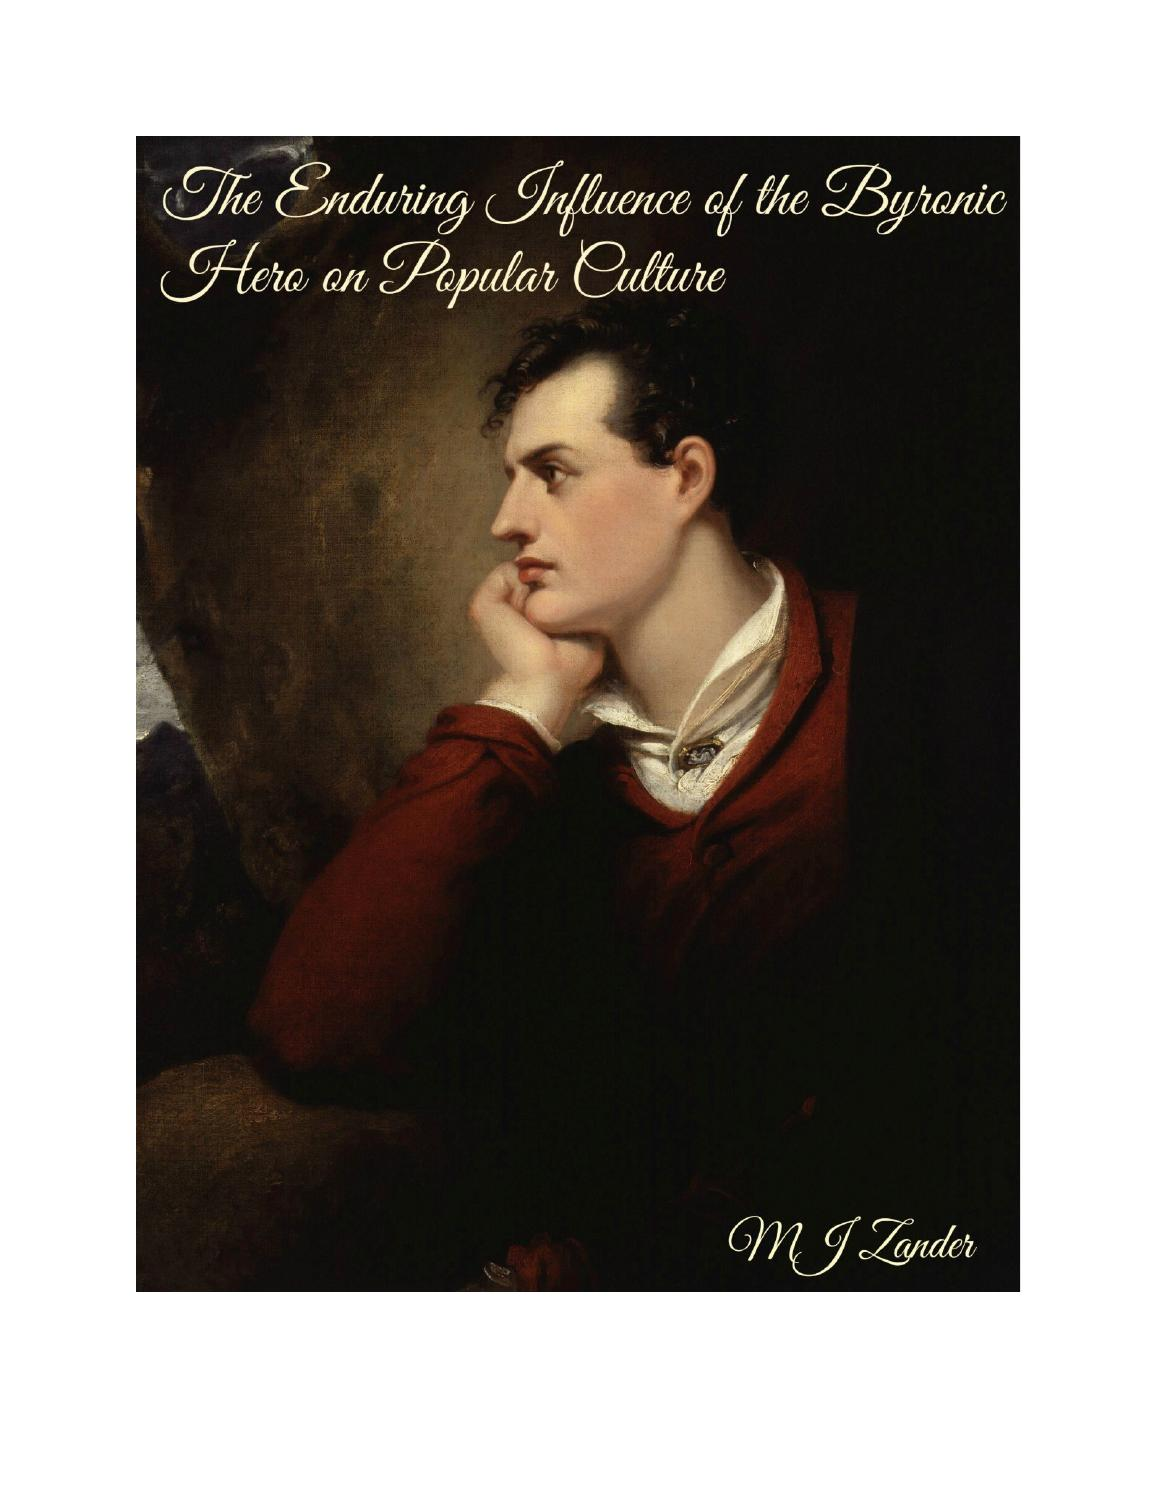 the enduring influence of the byronic hero by mjzander